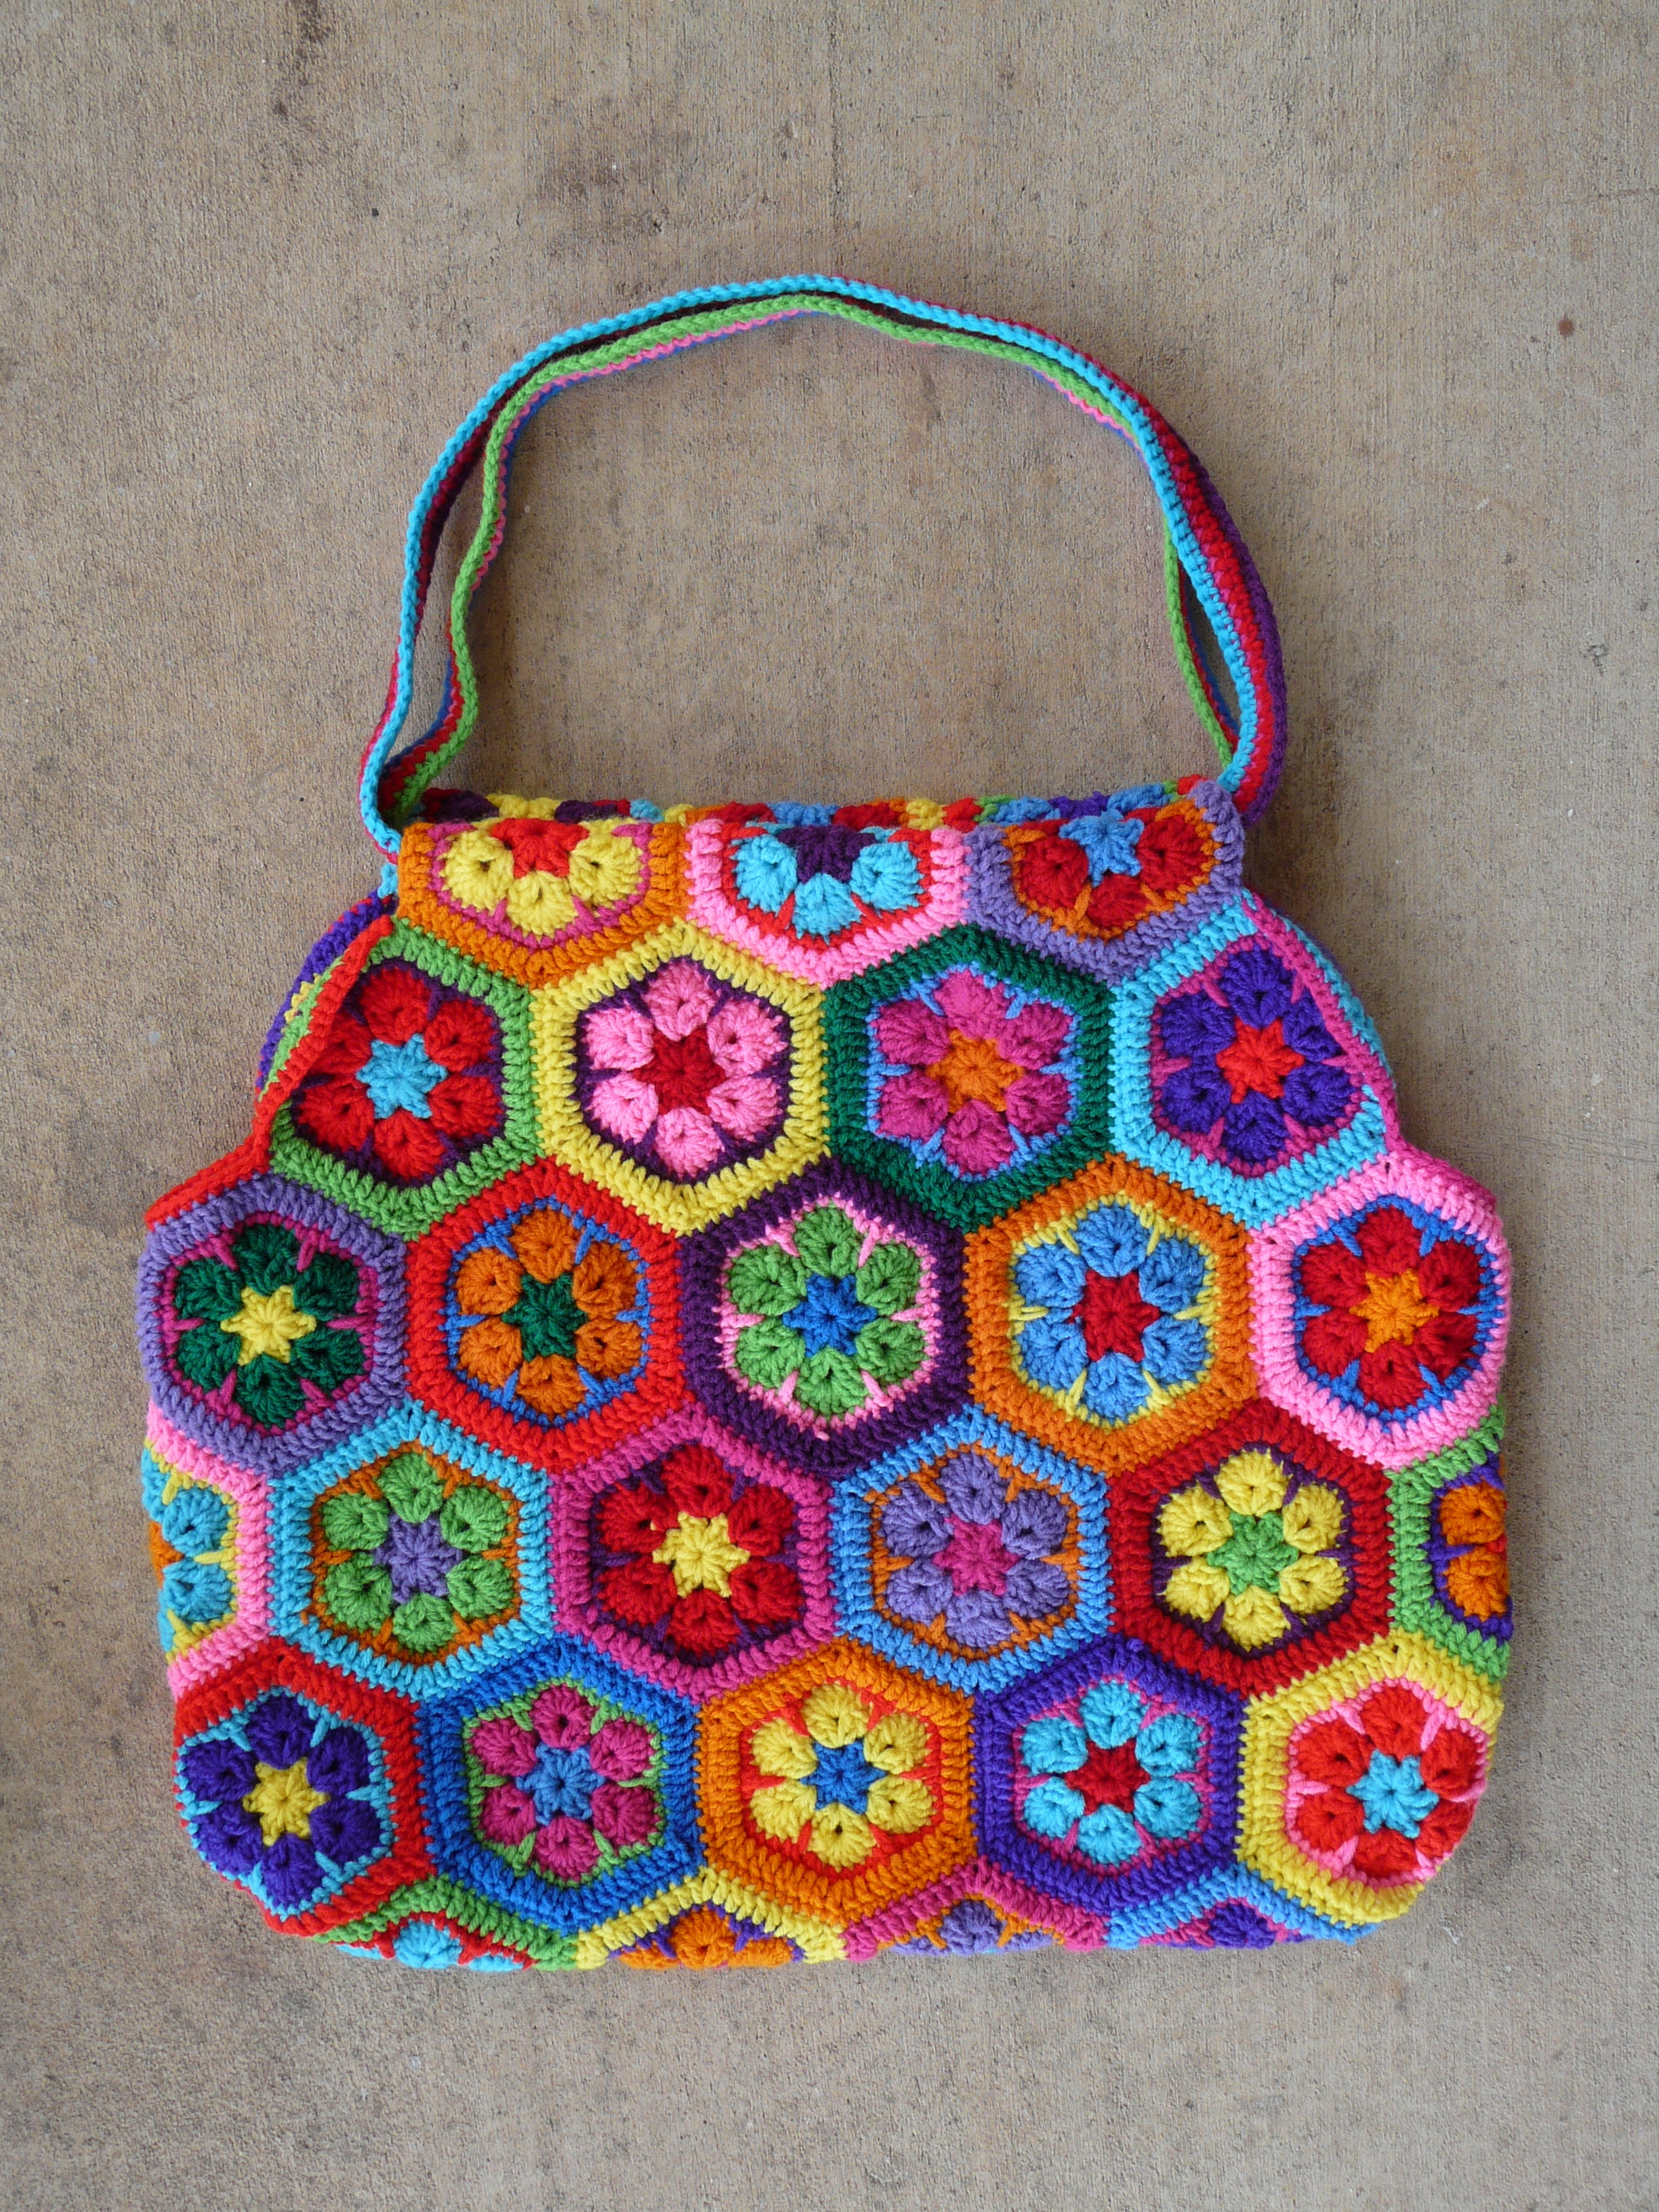 Crochet Bag Luxury Basic Overlay Crochet Archives Crochetbug Of Innovative 49 Models Crochet Bag